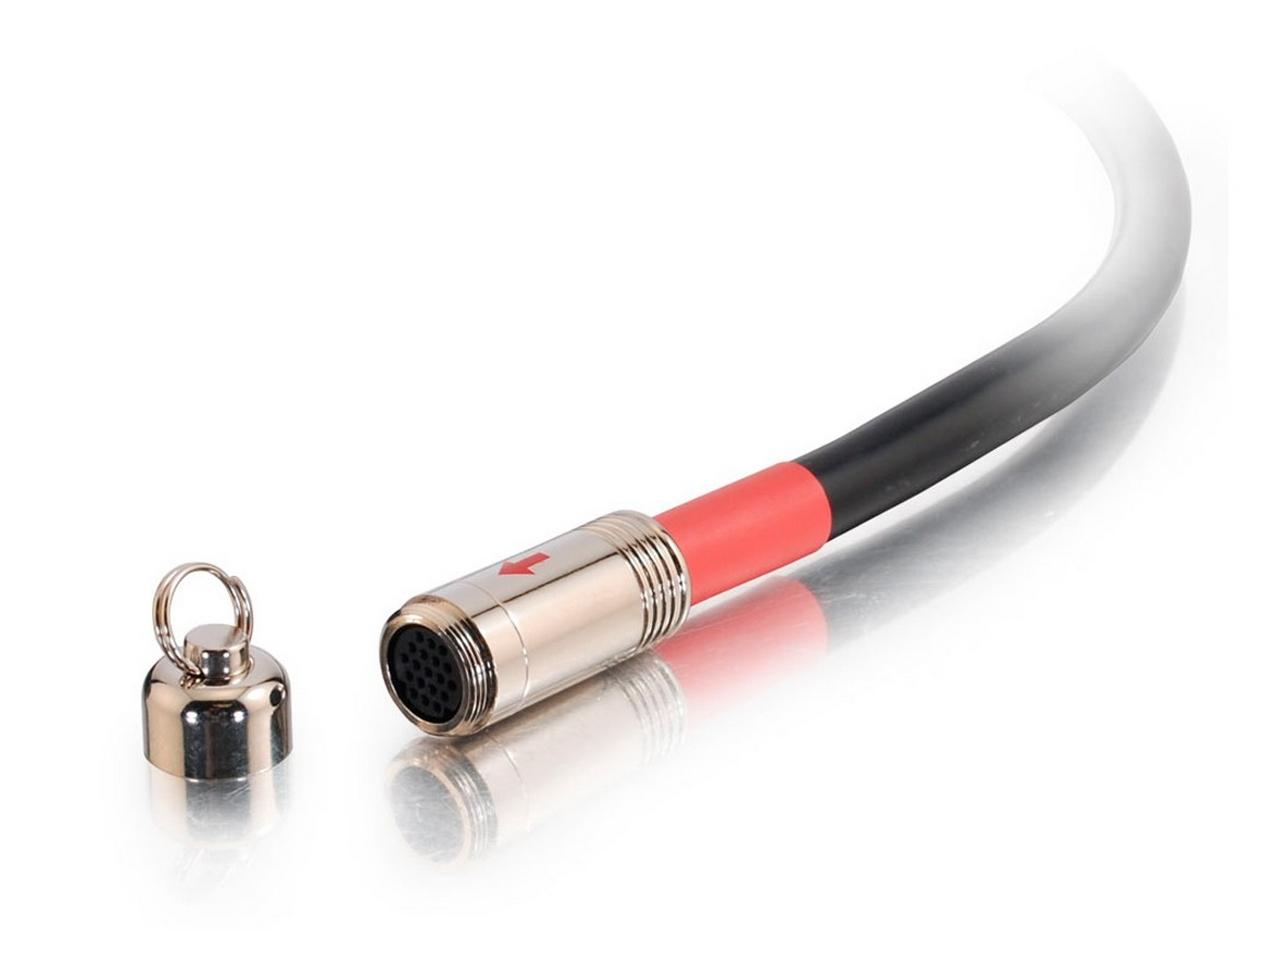 RR-DG-35 RapidRun Digital Runner Cable 35ft by Kramer